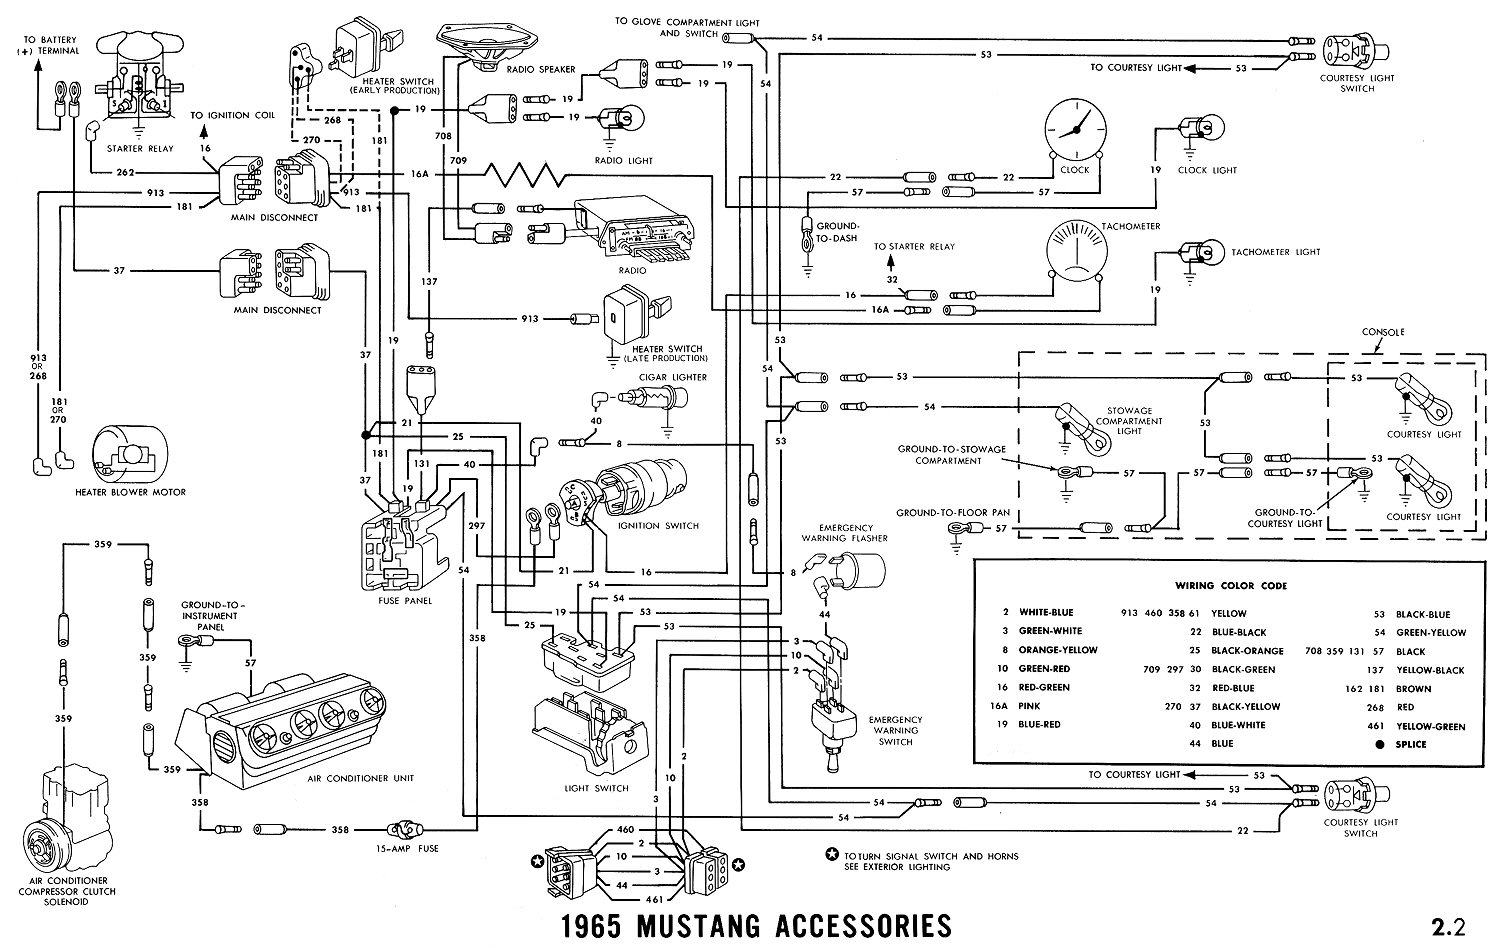 1969 Mustang Instrument Panel Diagram Wiring Schematic Archive Of 70 Dash Blog About Diagrams Rh Clares Driving Co Uk